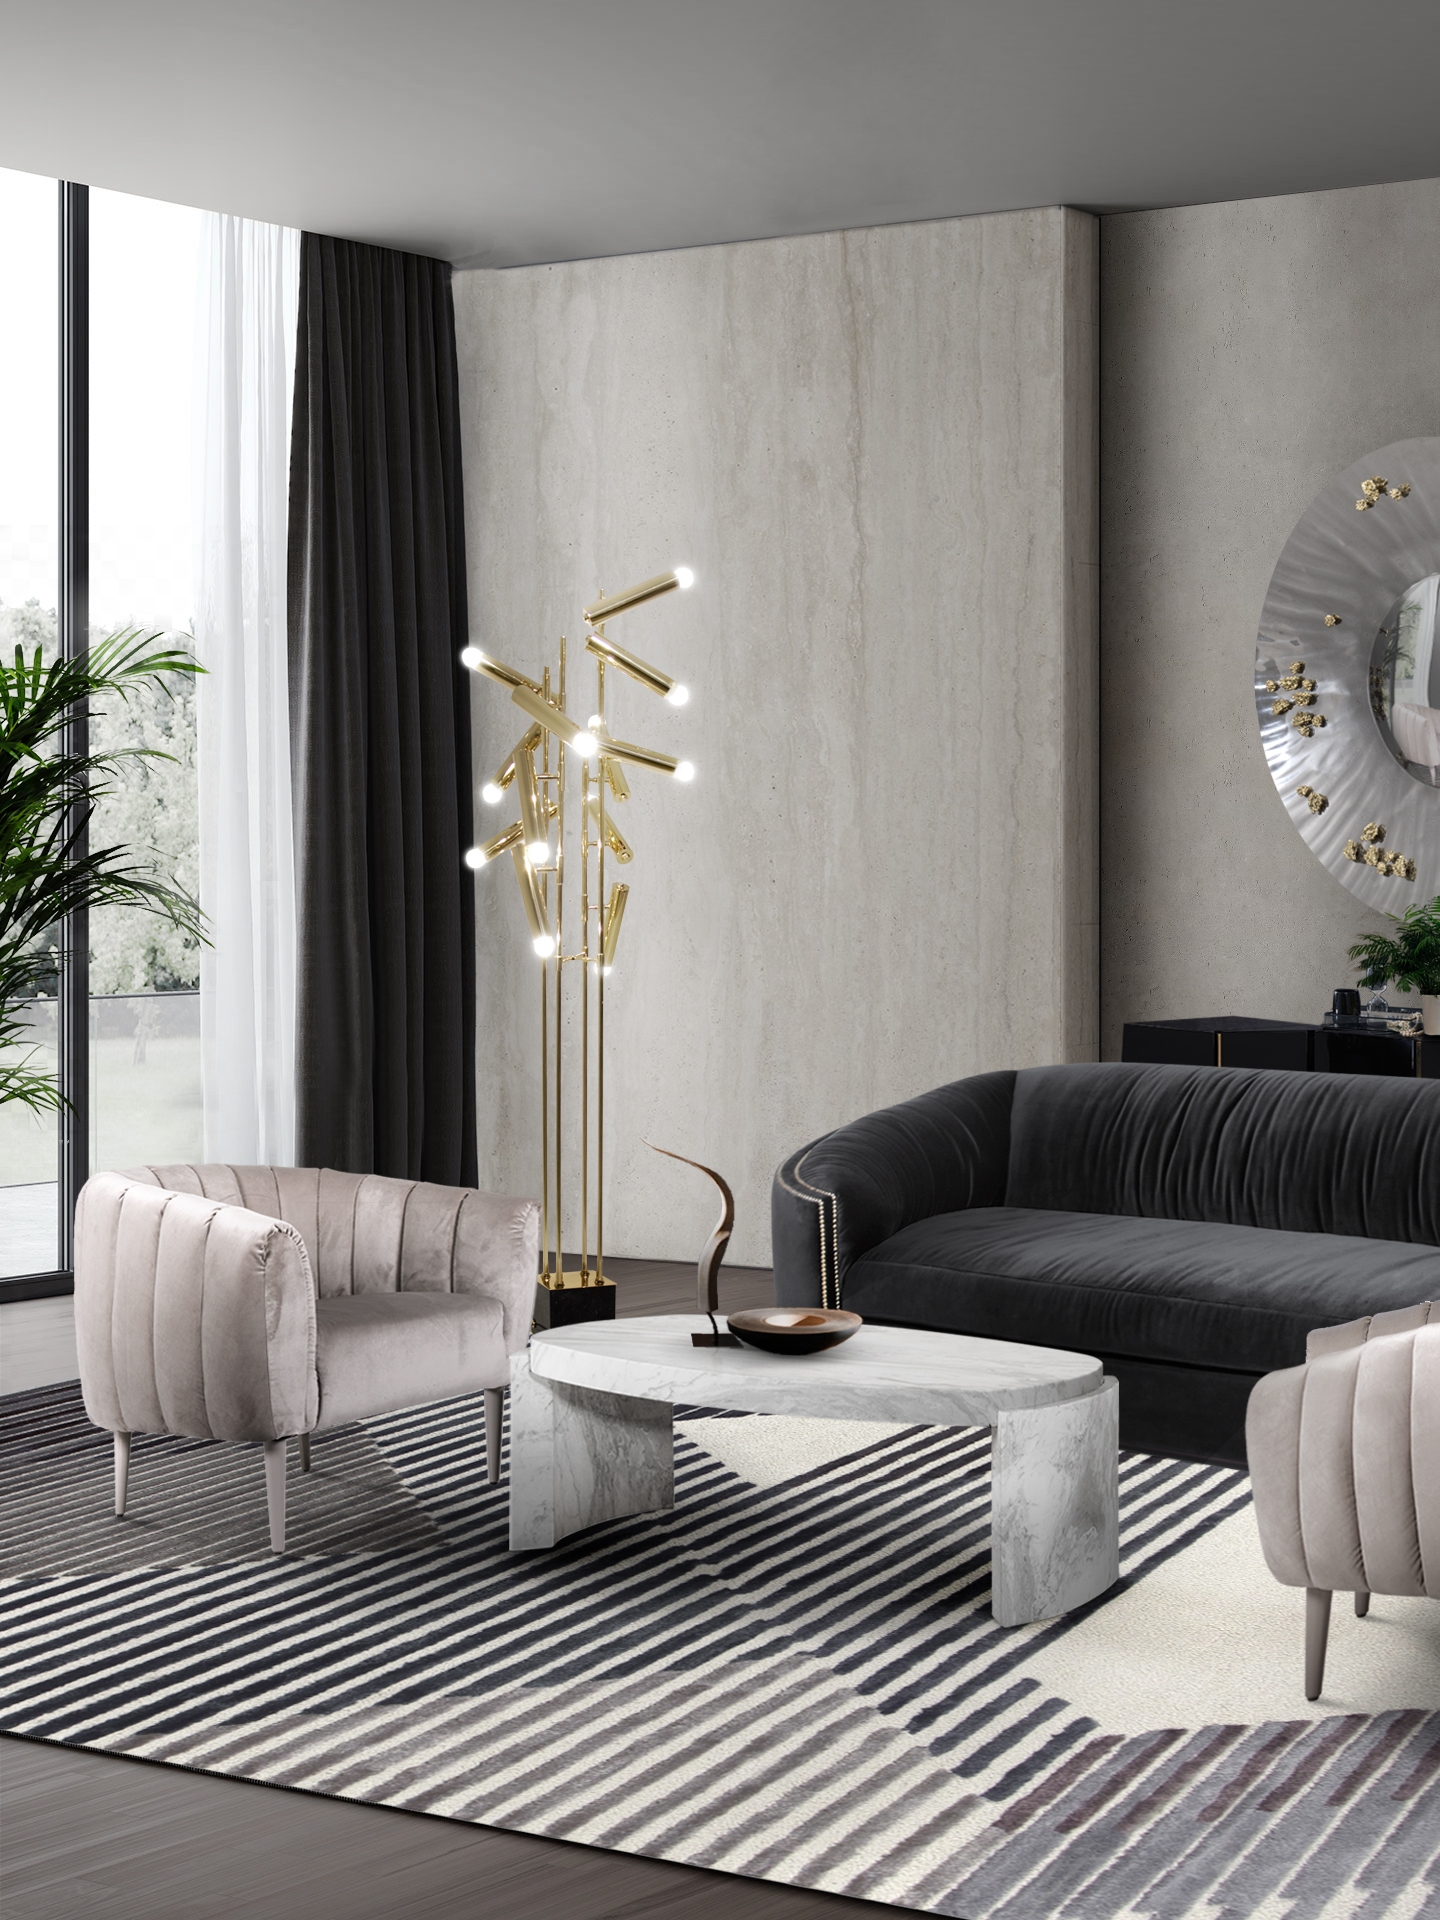 Home Decor Trends about to emerge at the start of 2020 home decor trends Home Decor Trends about to emerge at the start of 2020 neutral ambiences brabbu